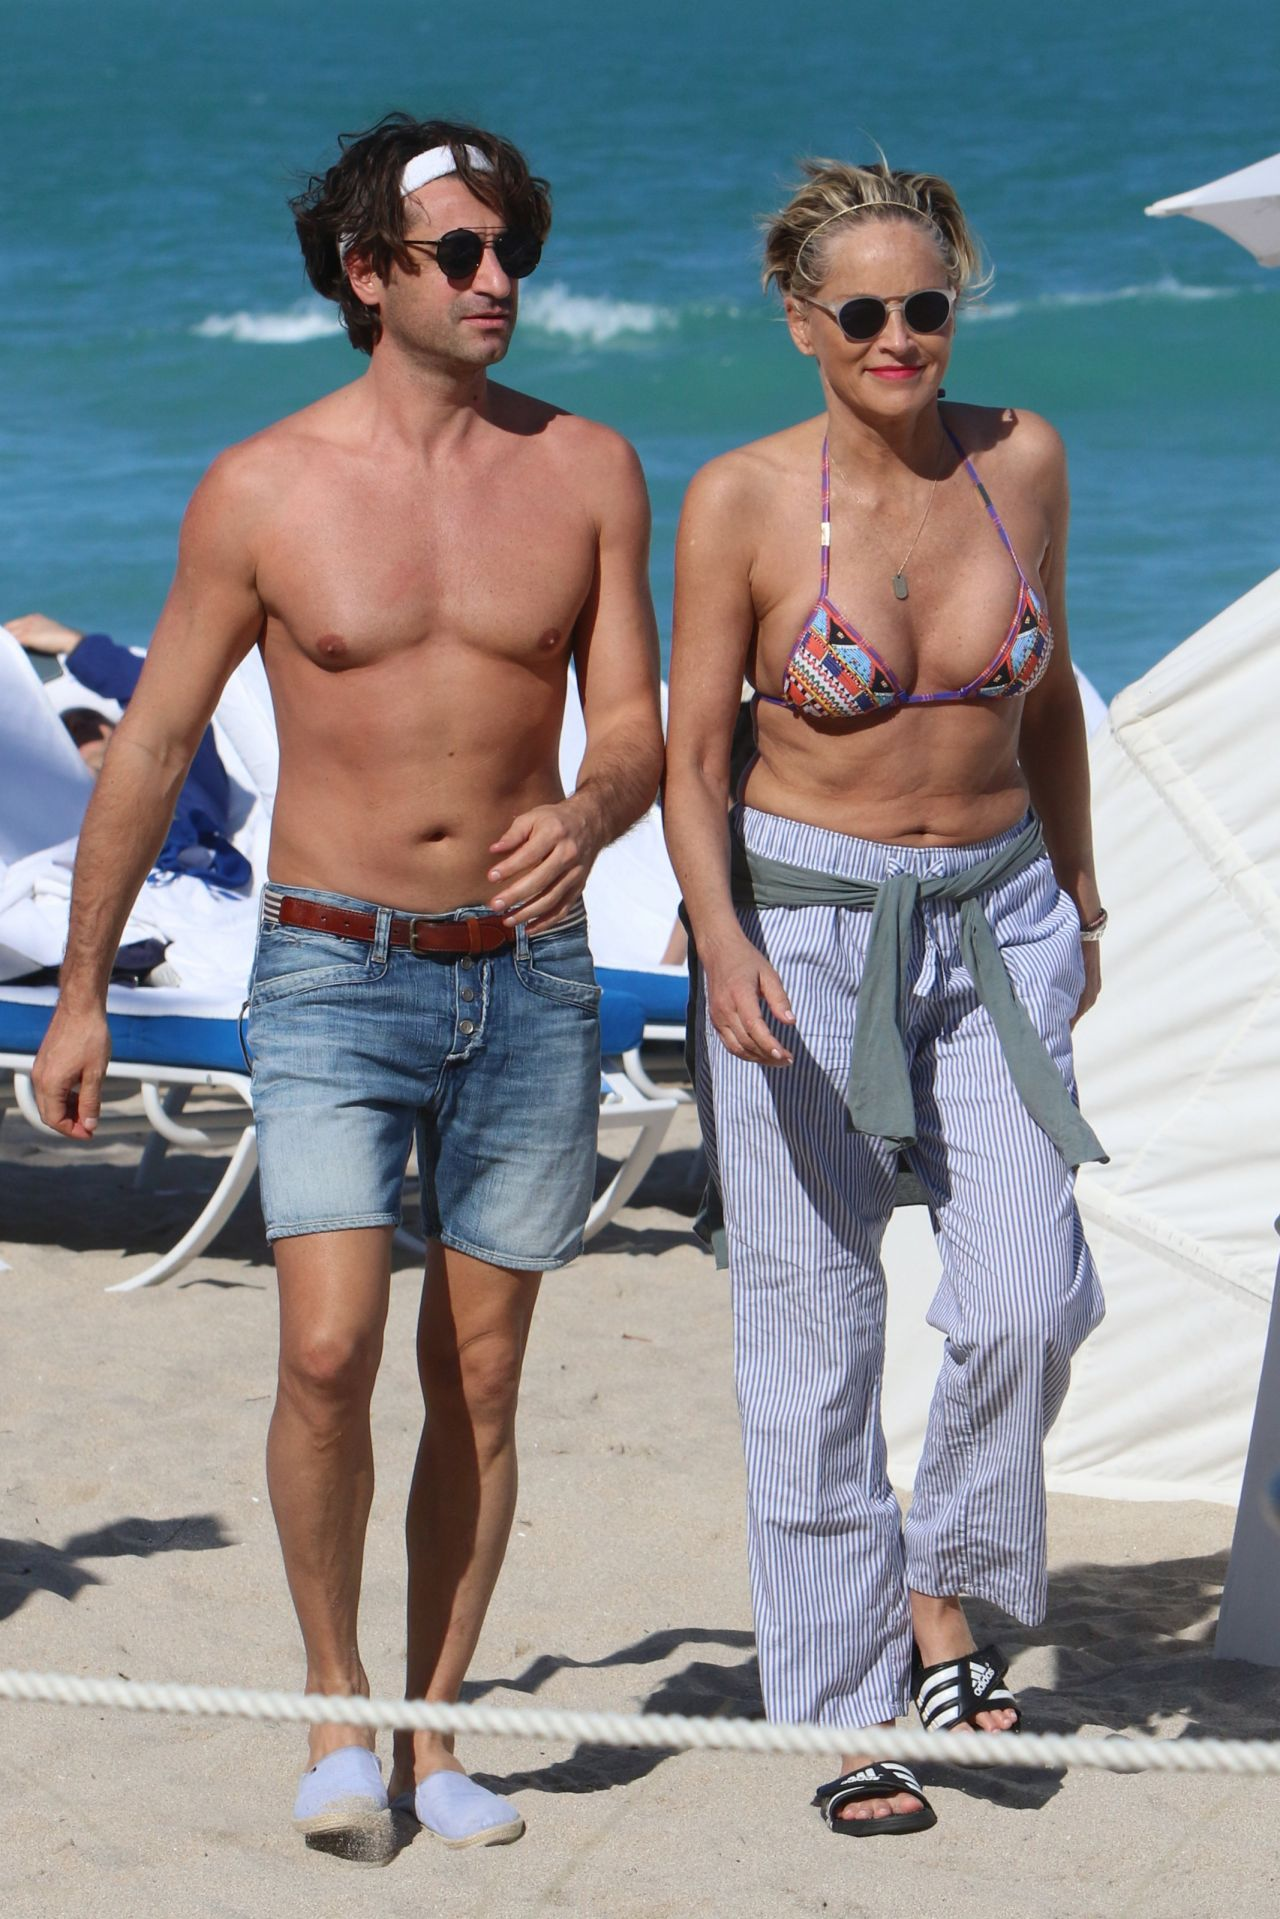 Sharon Stone In Bikini Top At The Beach In Miami With Her -2540